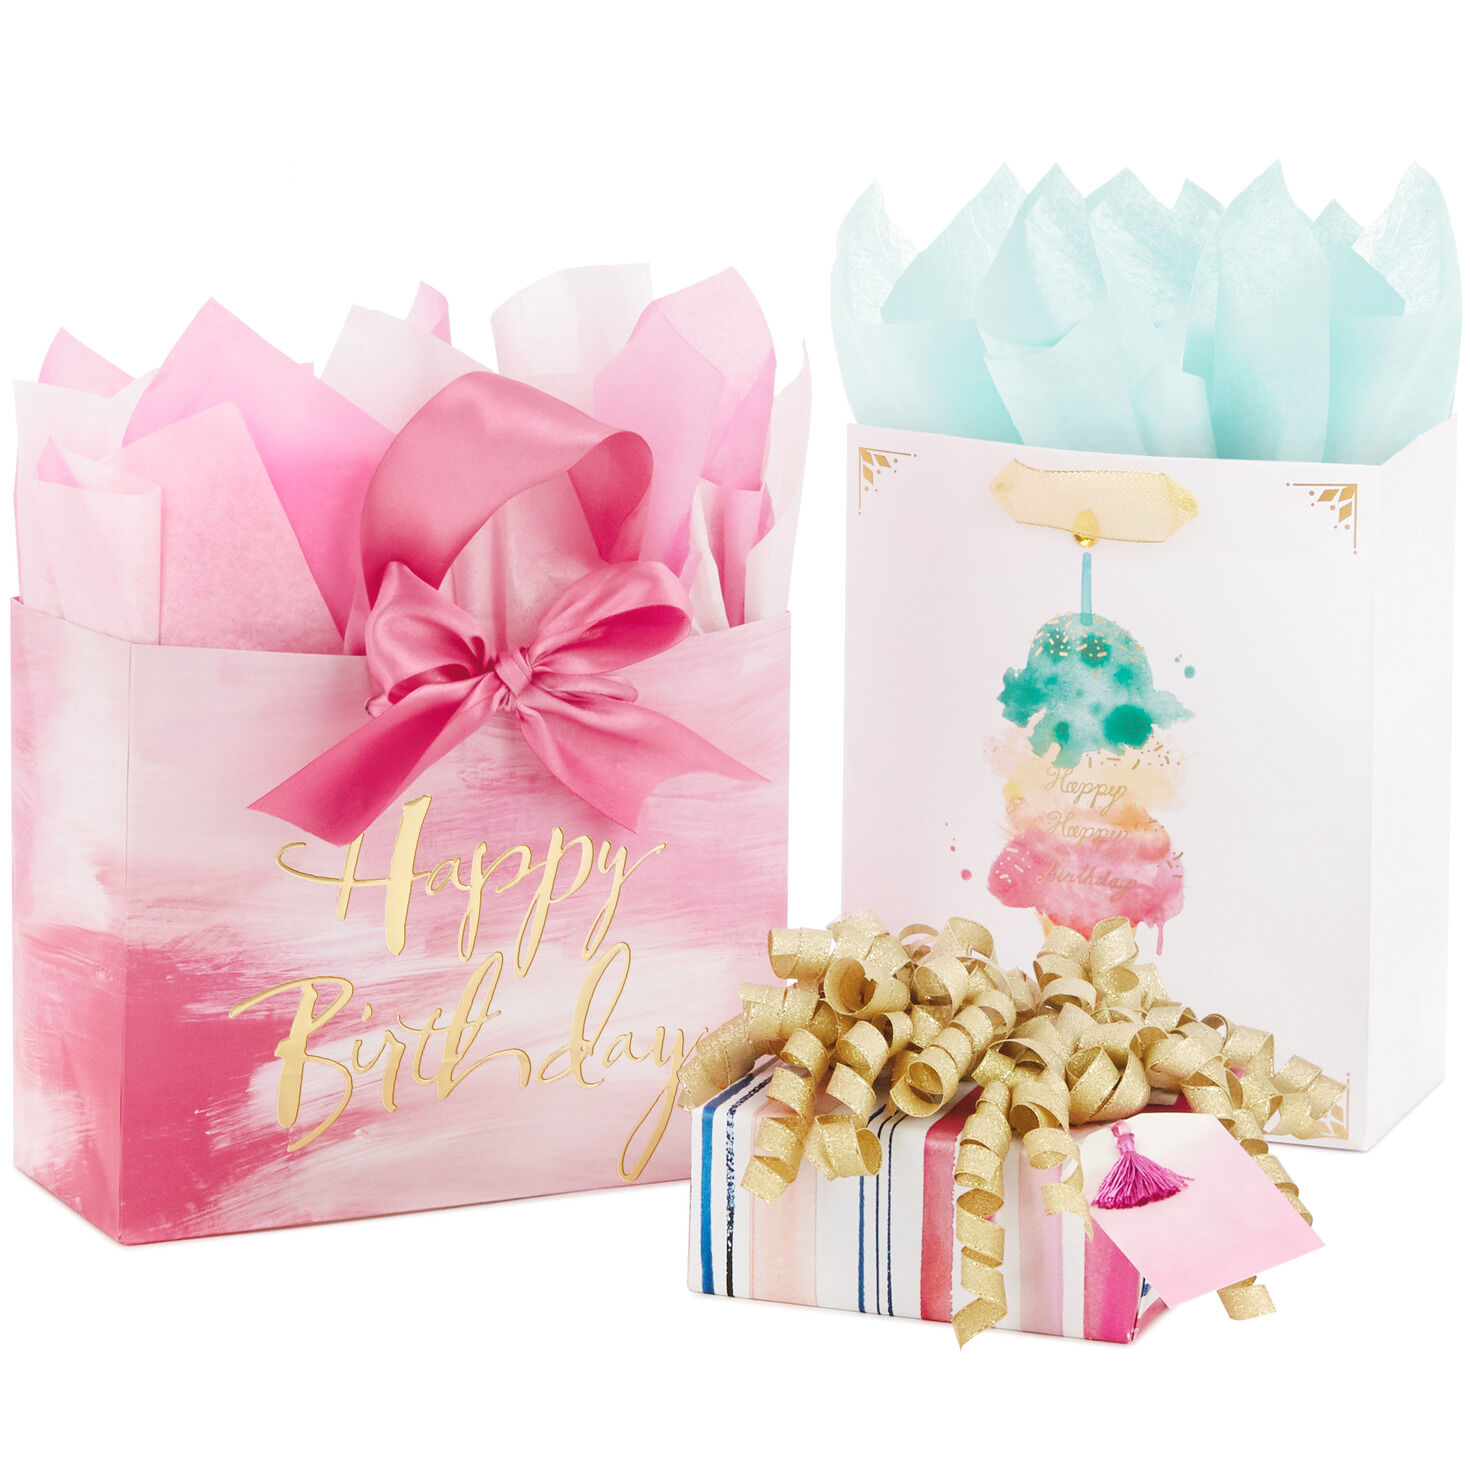 Birthday Ribbon Age 1 to 10 in Blue or Pink ideal for cakes and gift wrapping